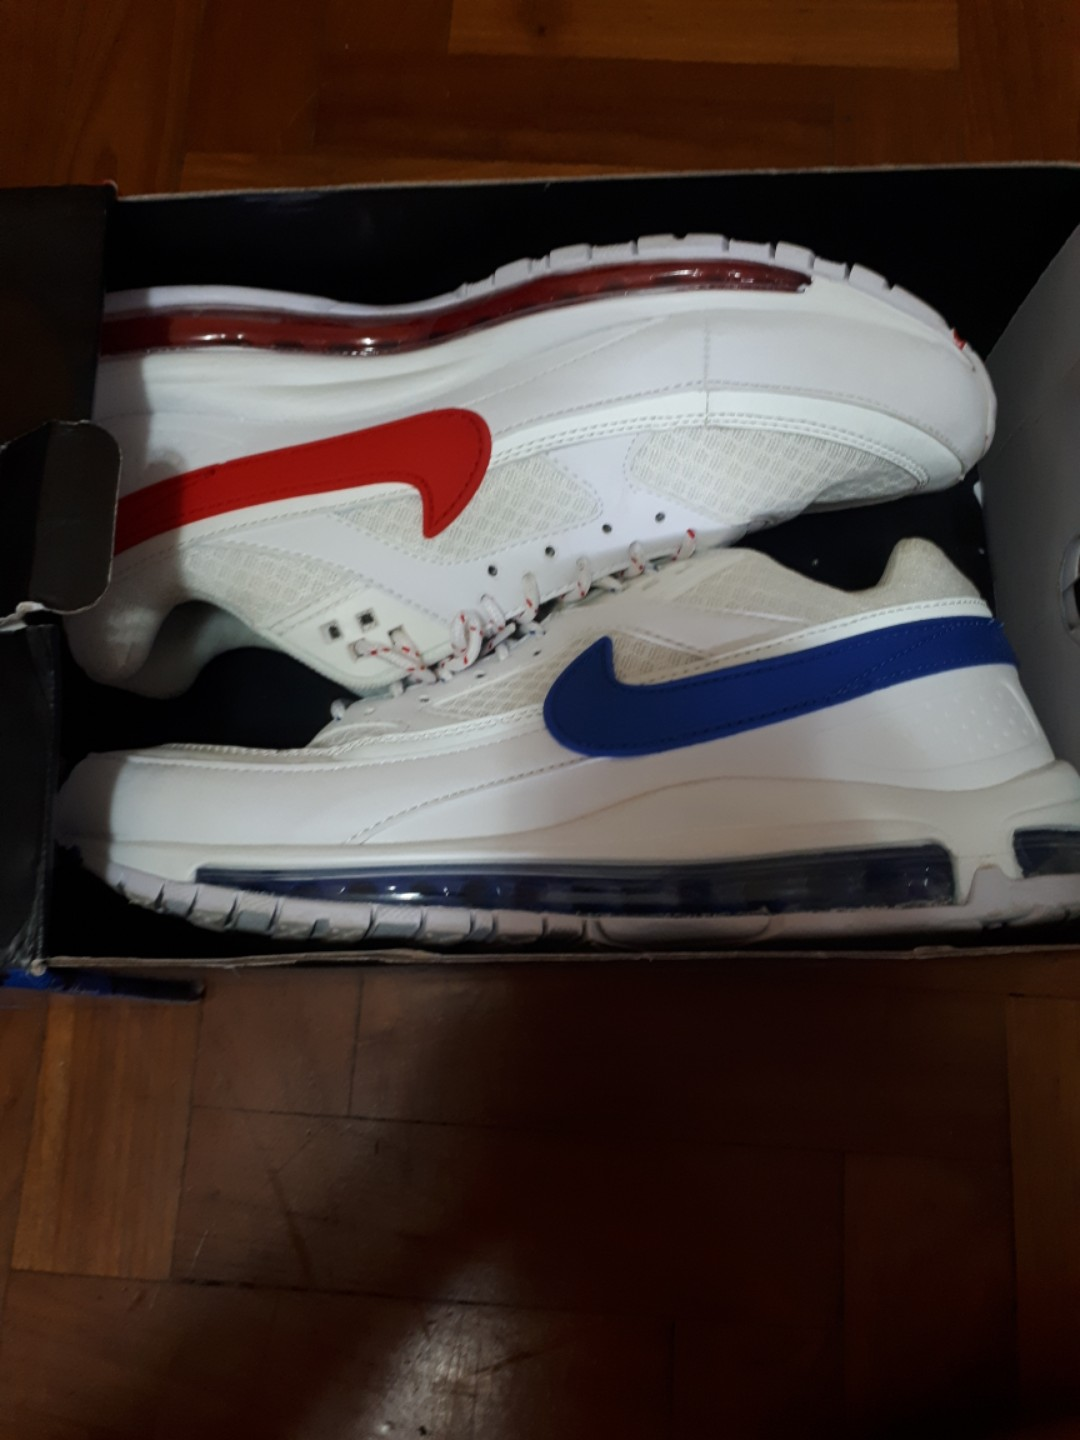 93dd27ec46 US9.5,EU43.5] UA Grade Skepta x Nike Air Max 97/BW, Men's Fashion ...